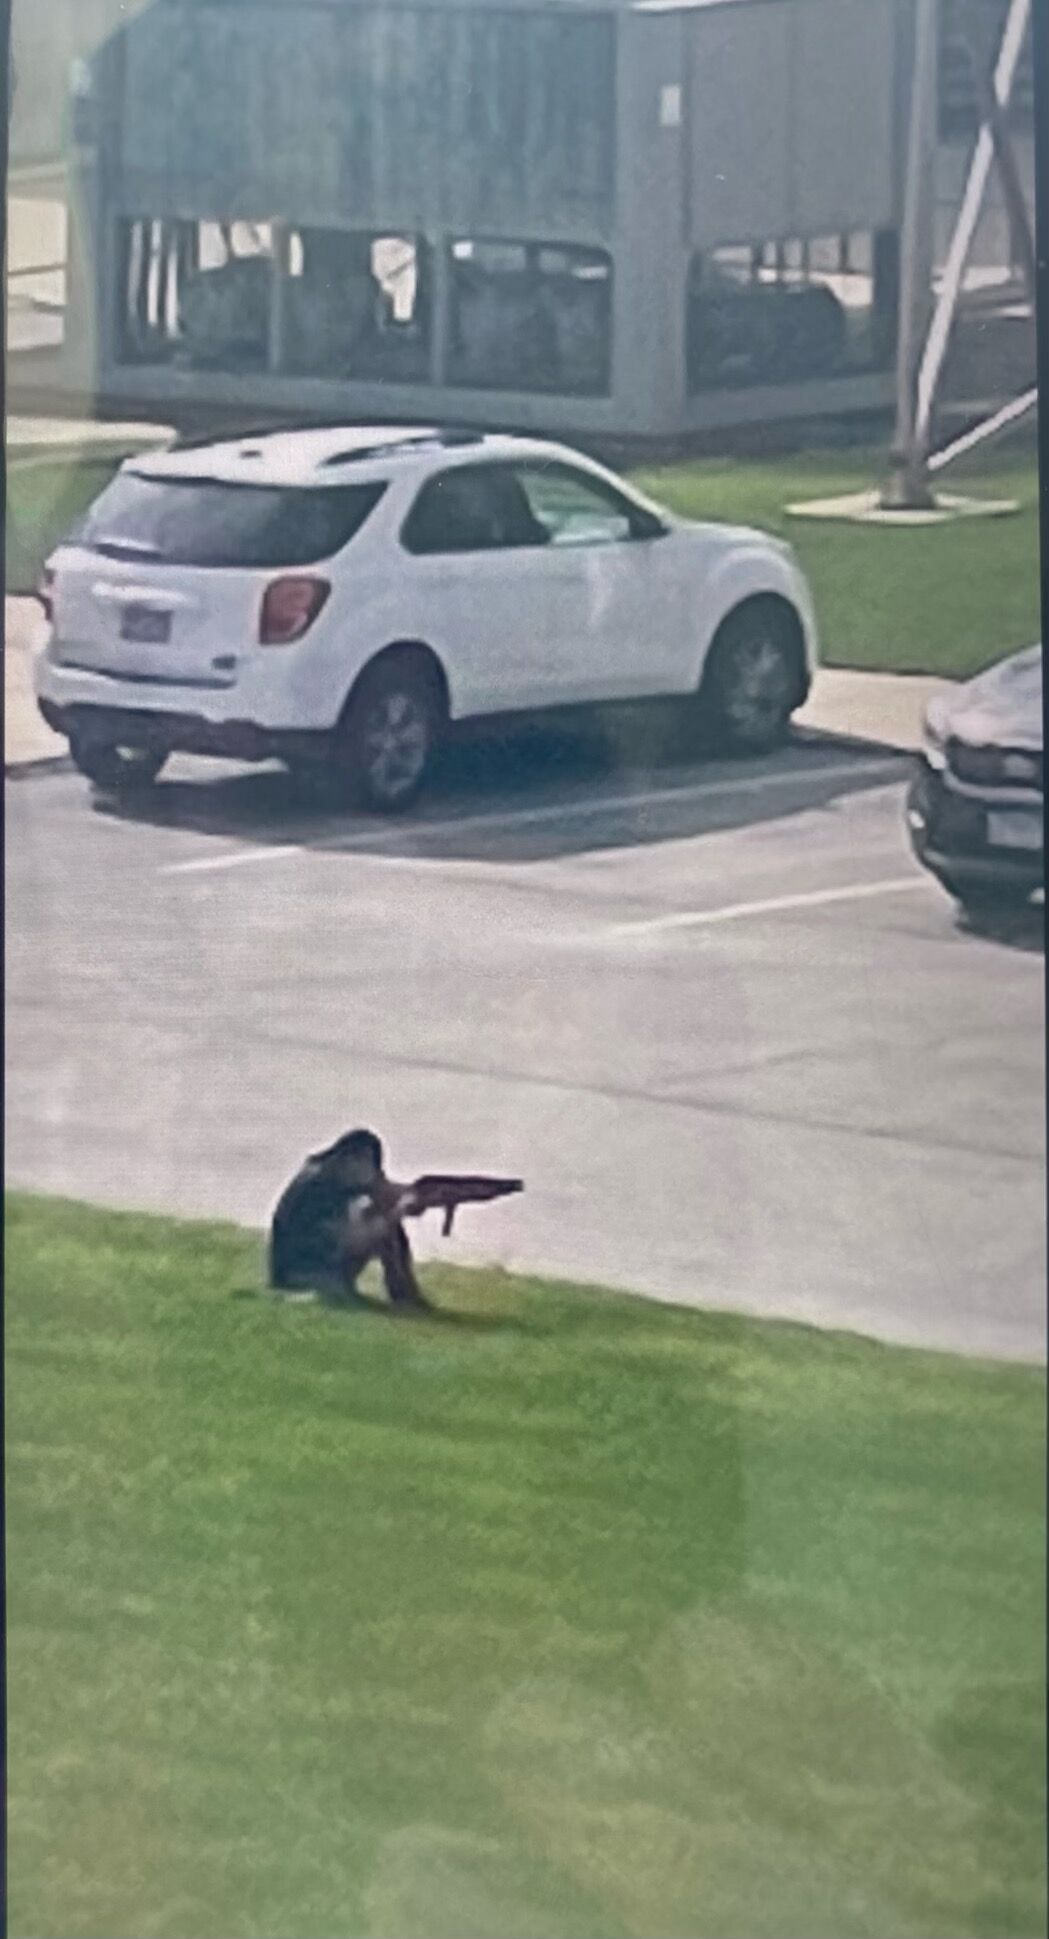 Witness snaps picture of shooter